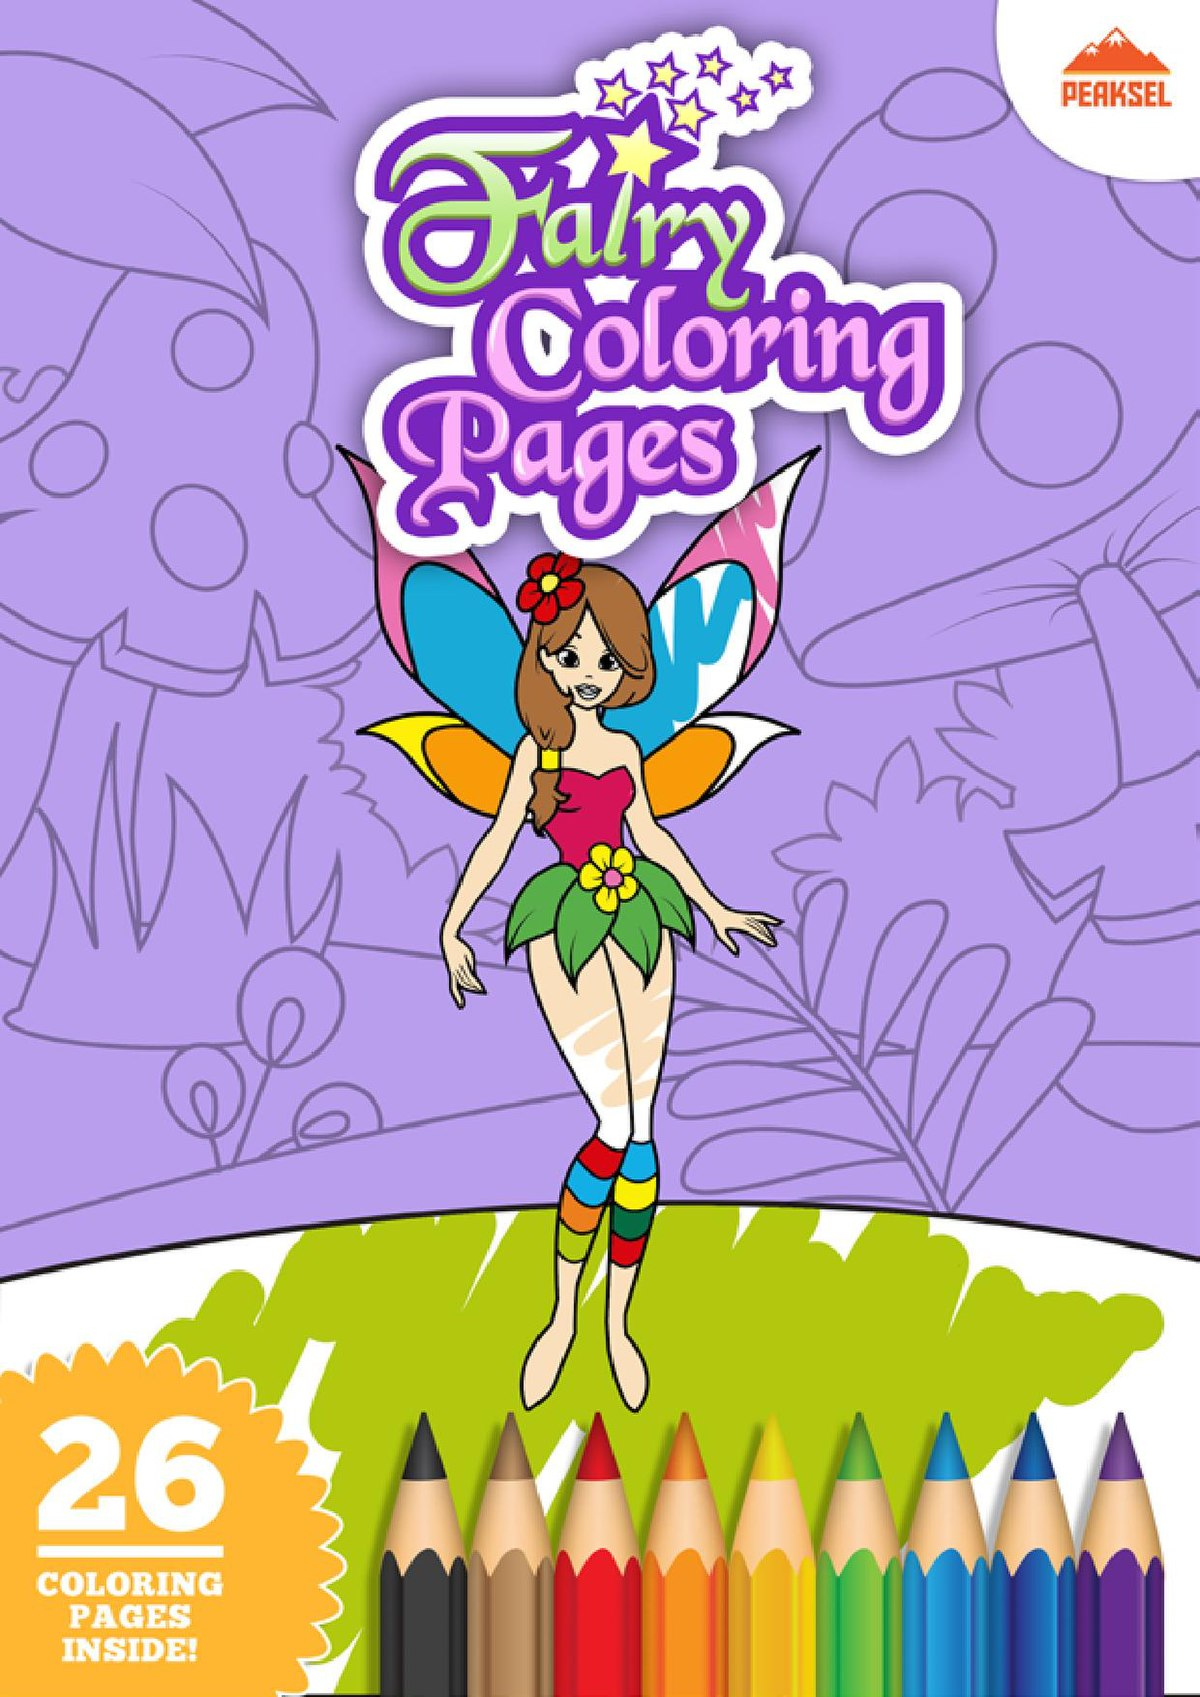 File Fairy Coloring Pages Printable Coloring Book For Kids Pdf Wikimedia Commons